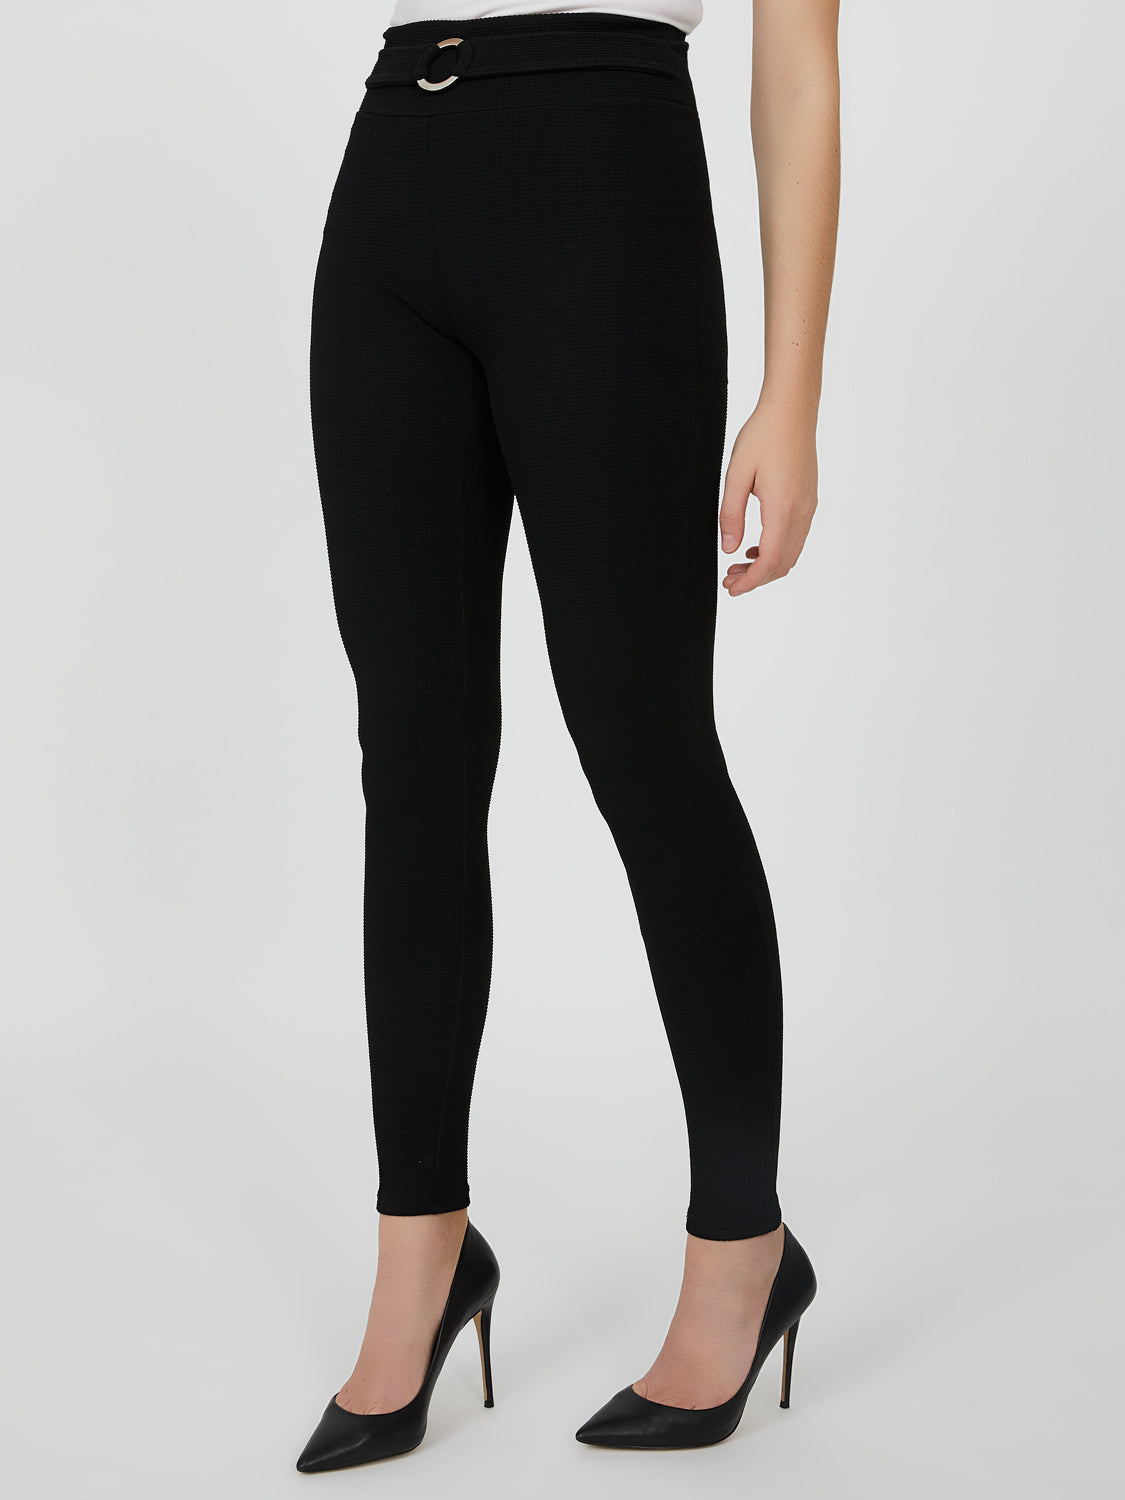 Skinny-Fit Textured Knit Pant